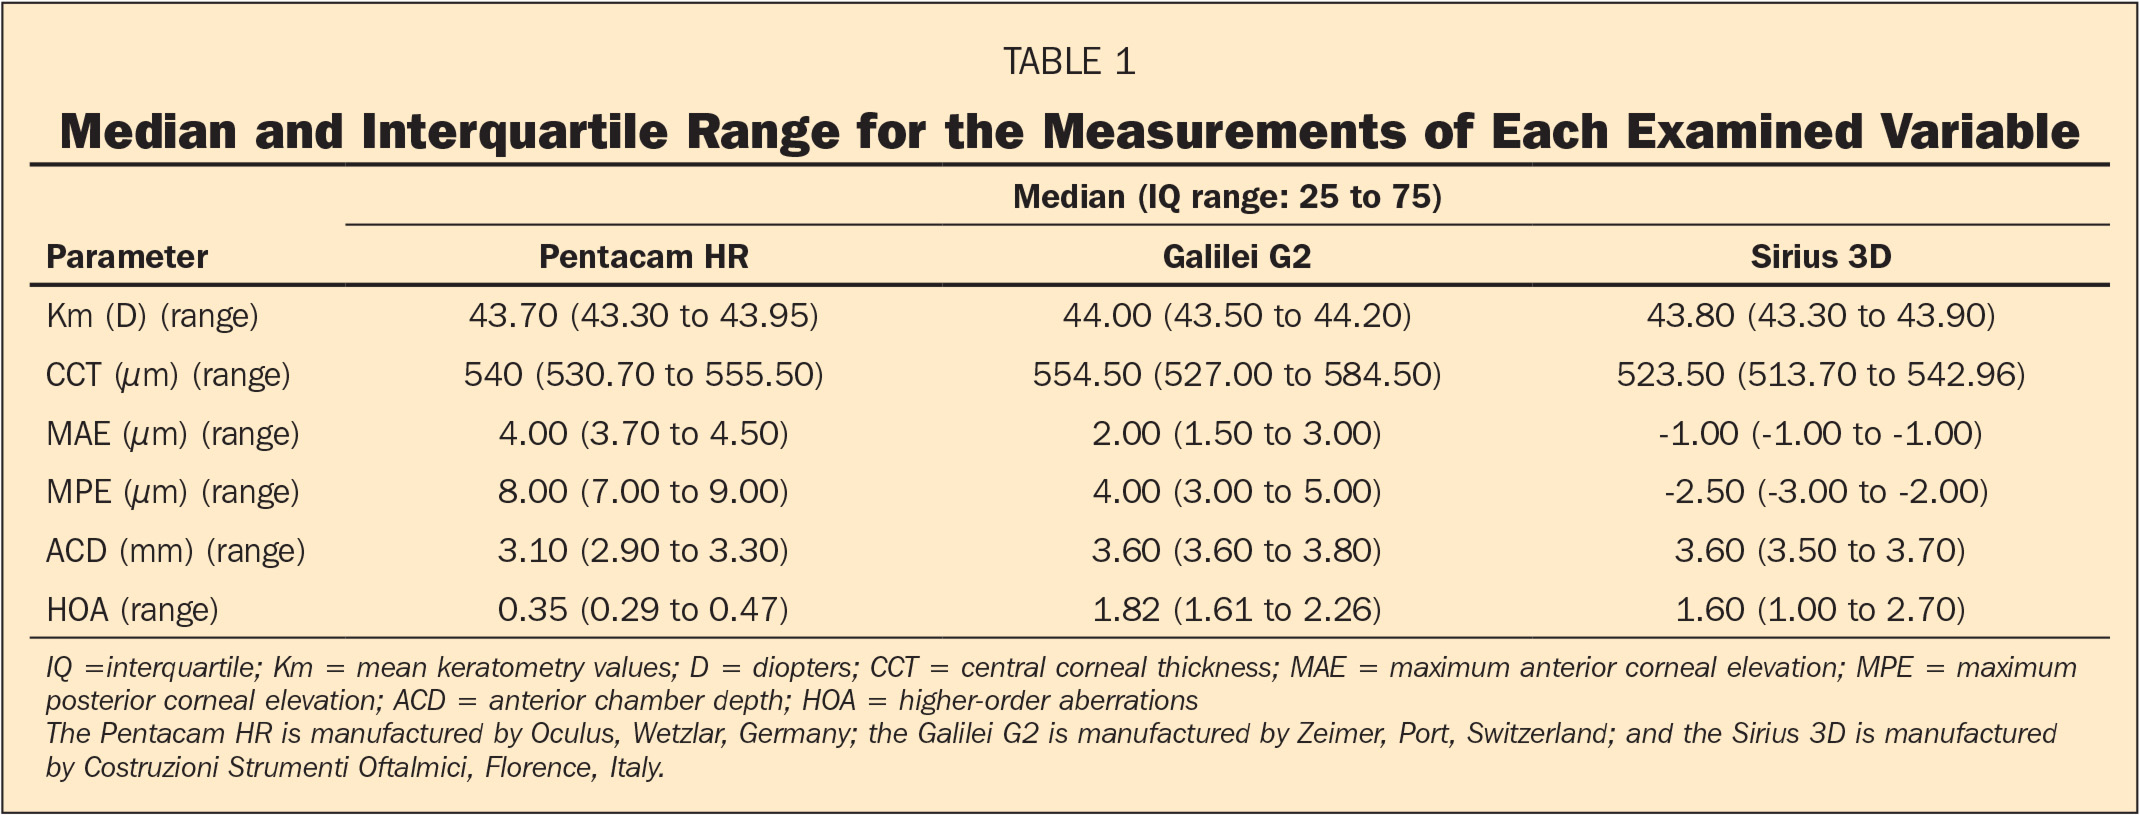 Median and Interquartile Range for the Measurements of Each Examined Variable